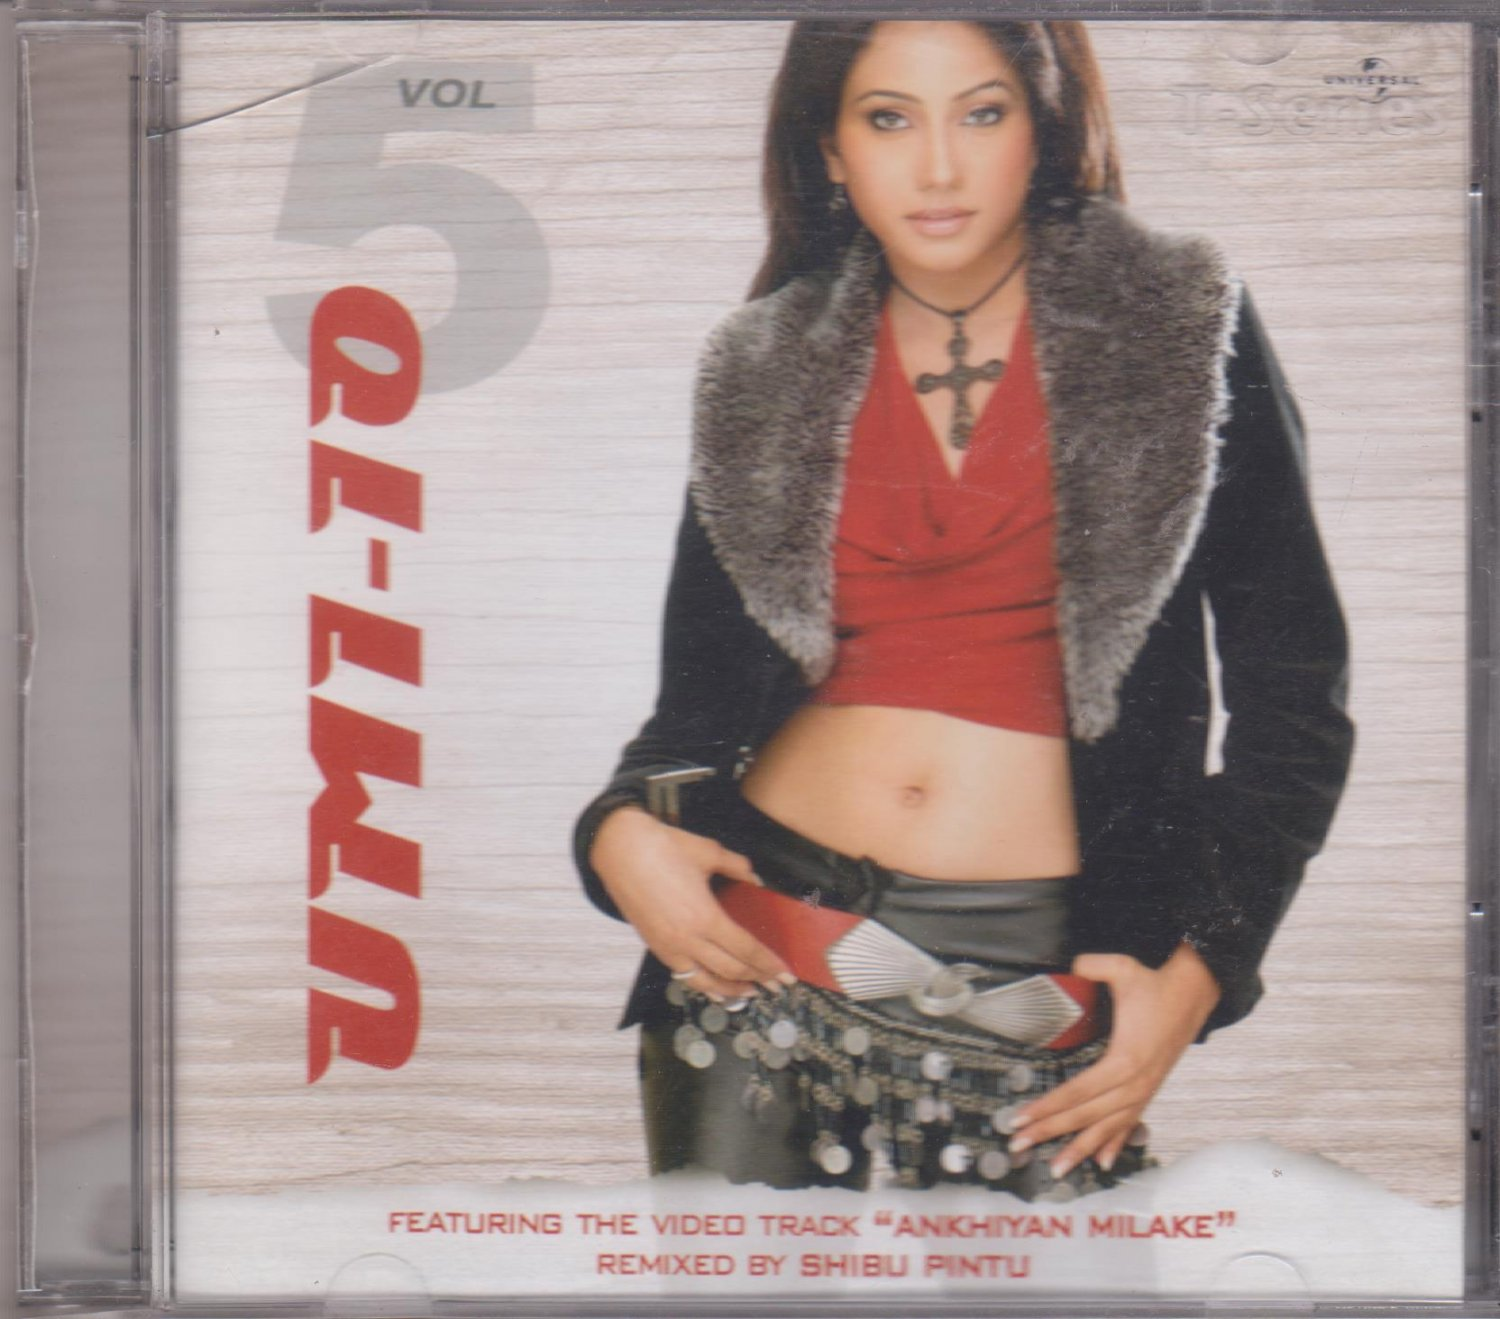 UMI 10 Vol 5 [Cd] Remixed By harry Anand - Bollywood Greatest Remixes of Oldies